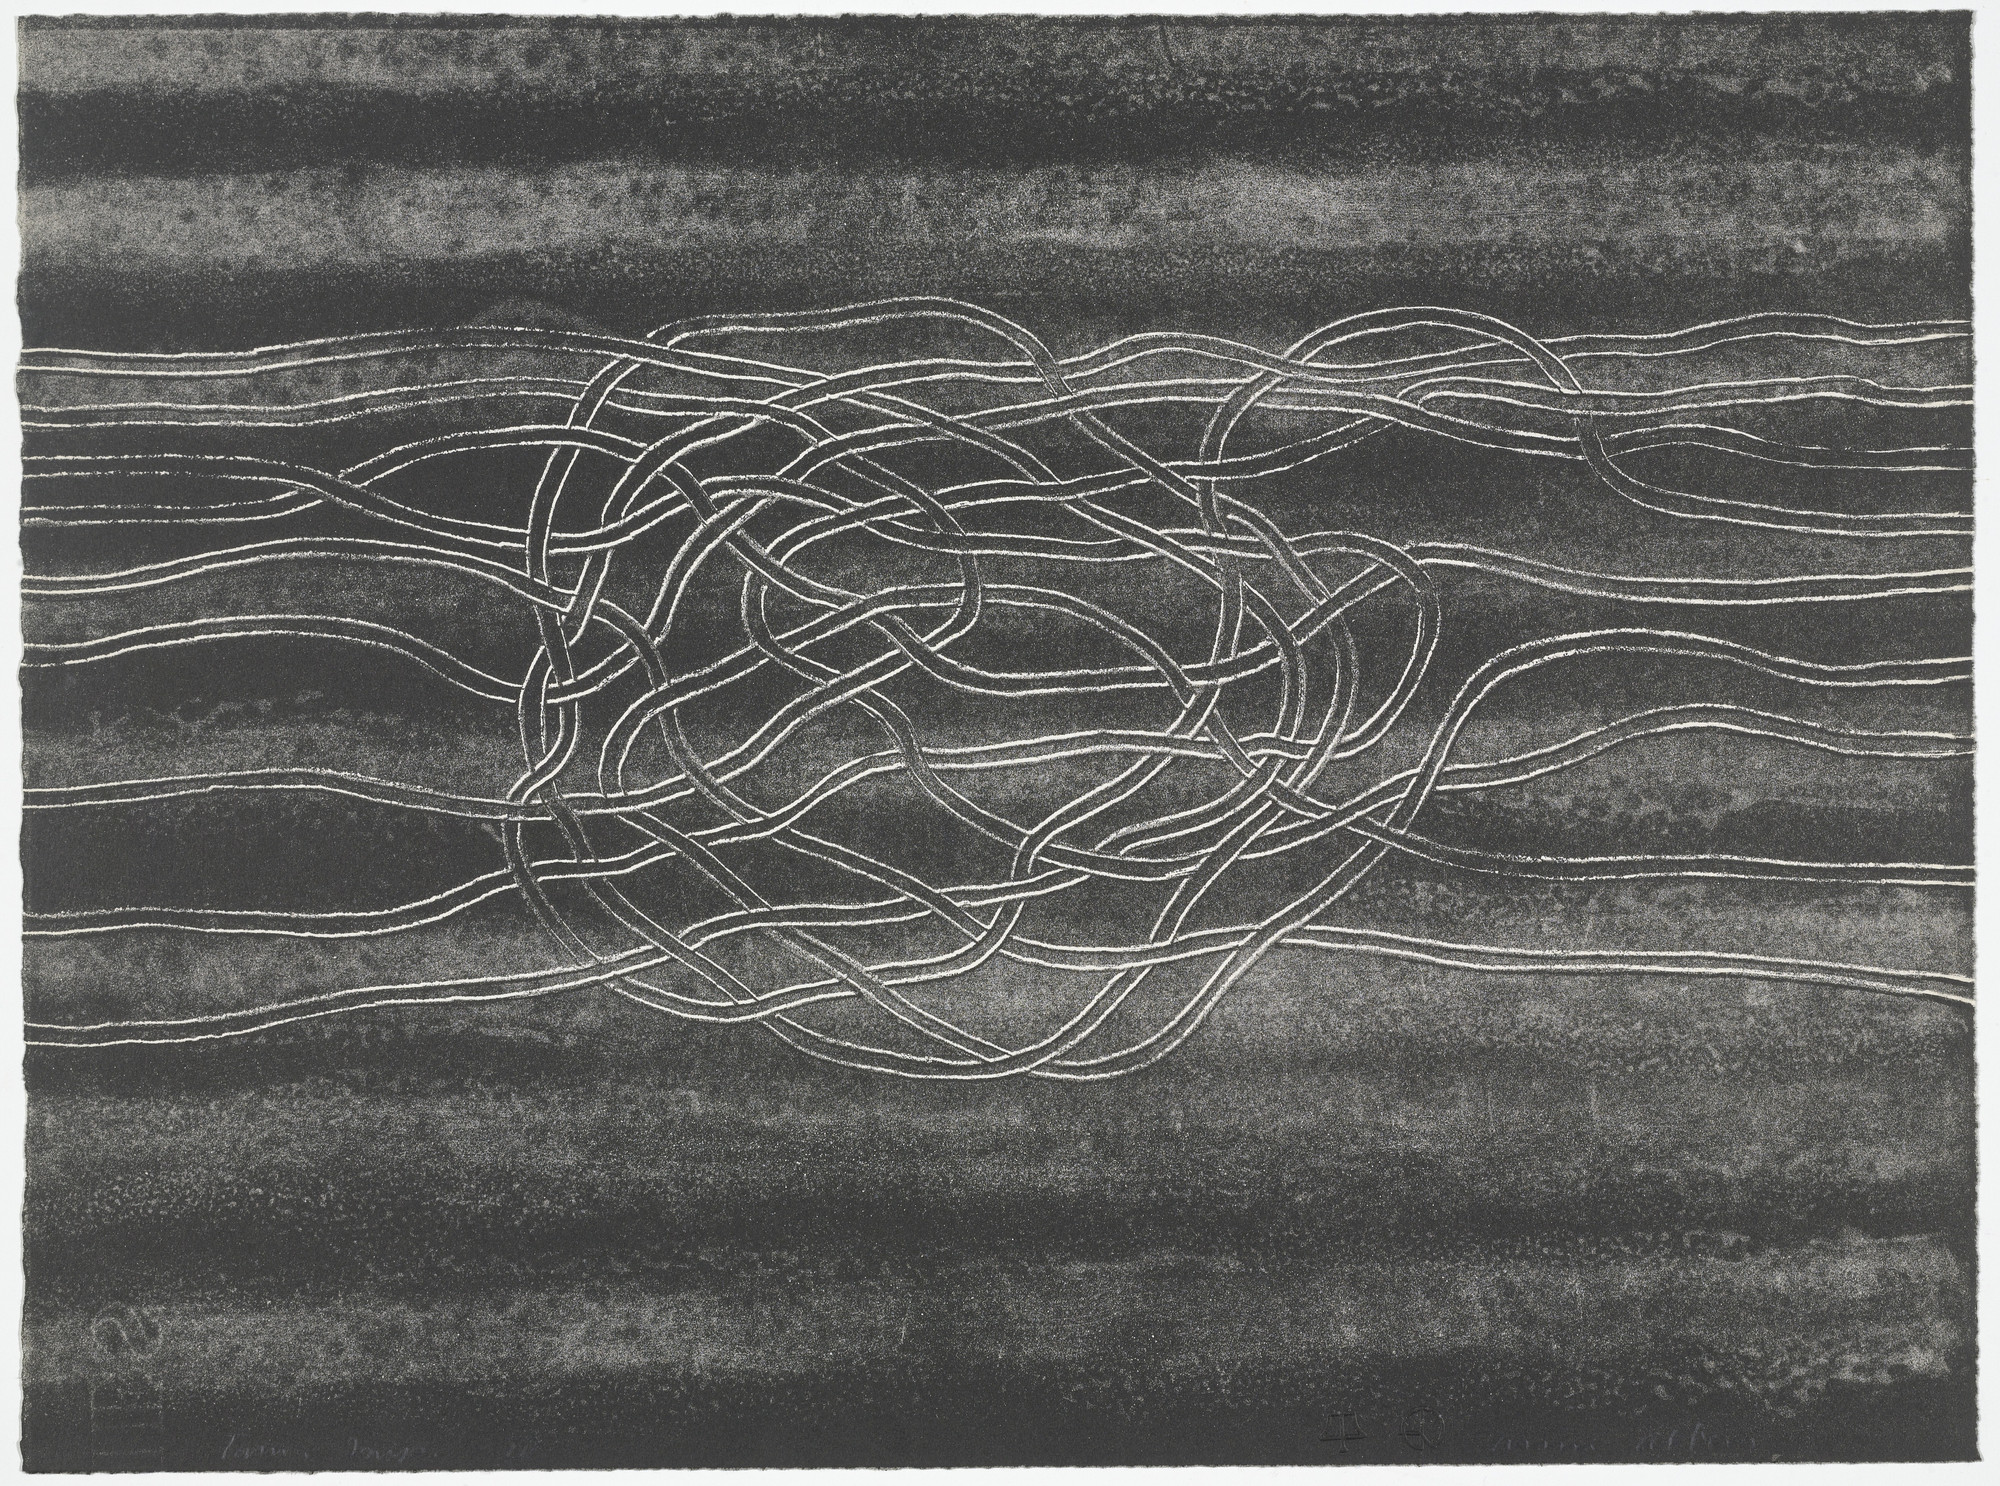 Anni Albers. IV from Line Involvements. 1964